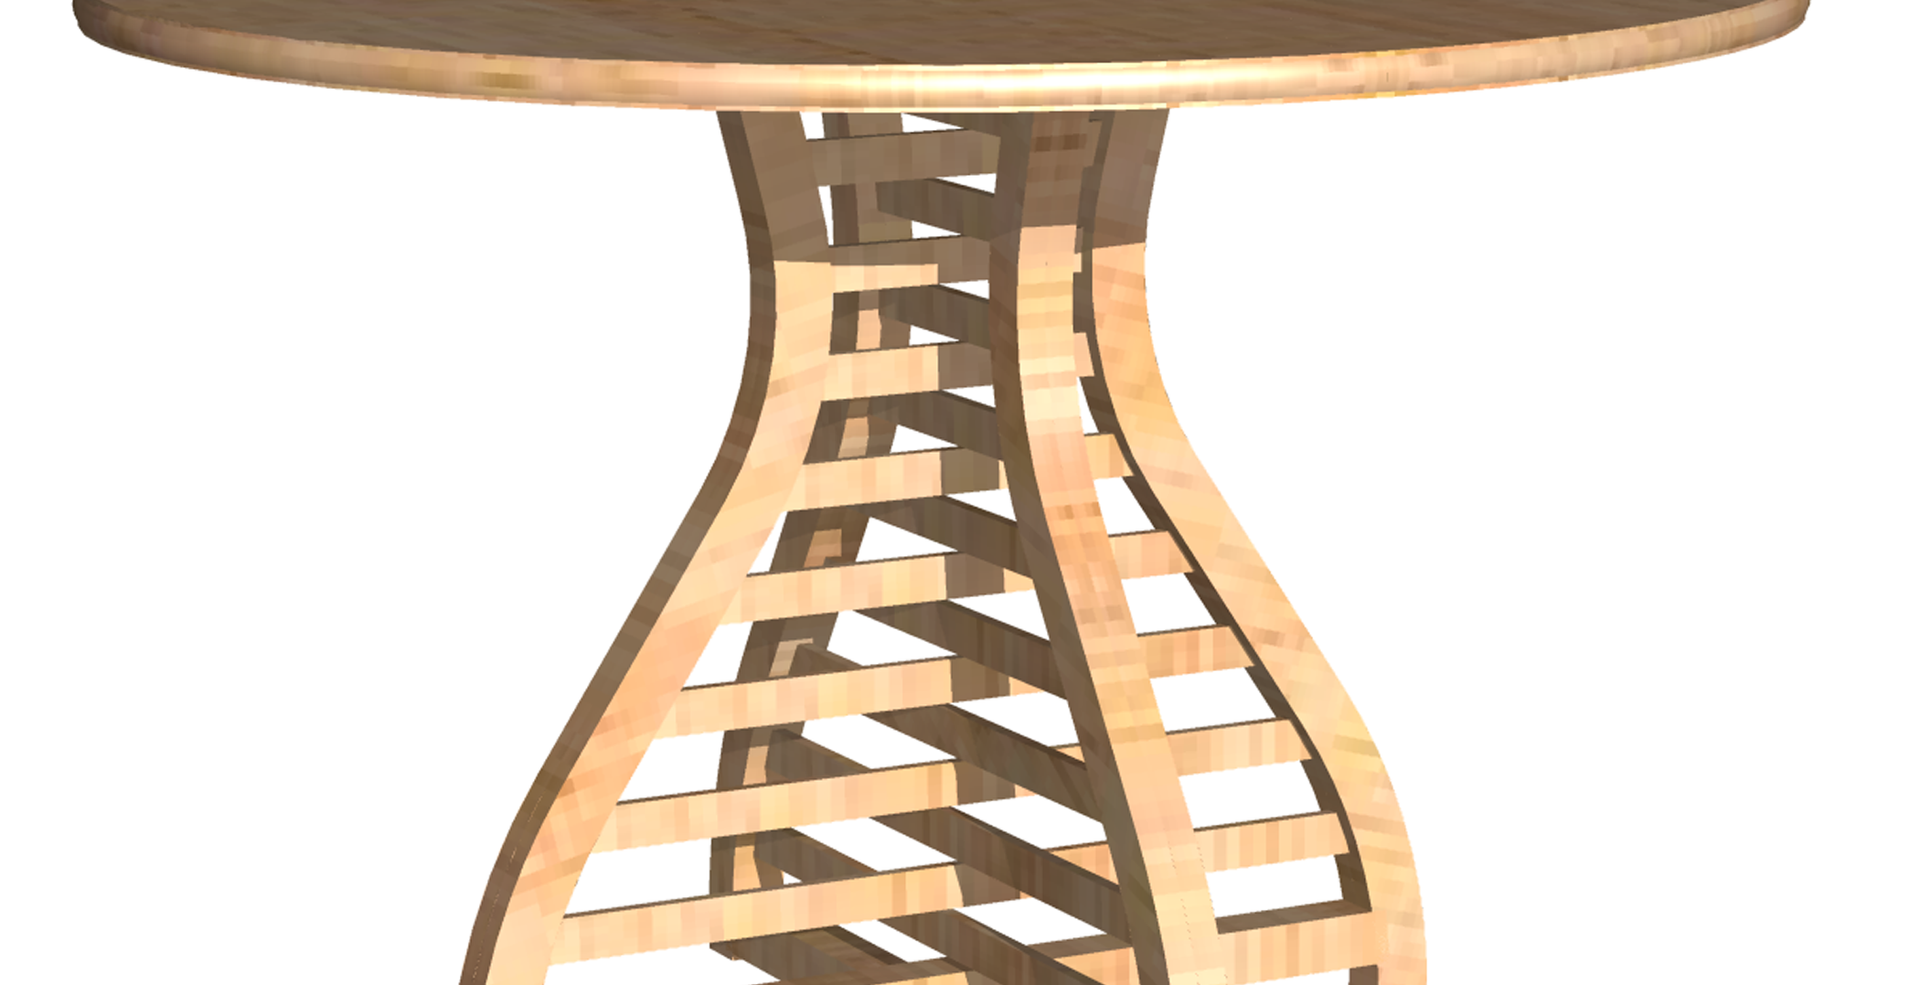 bam-table.png